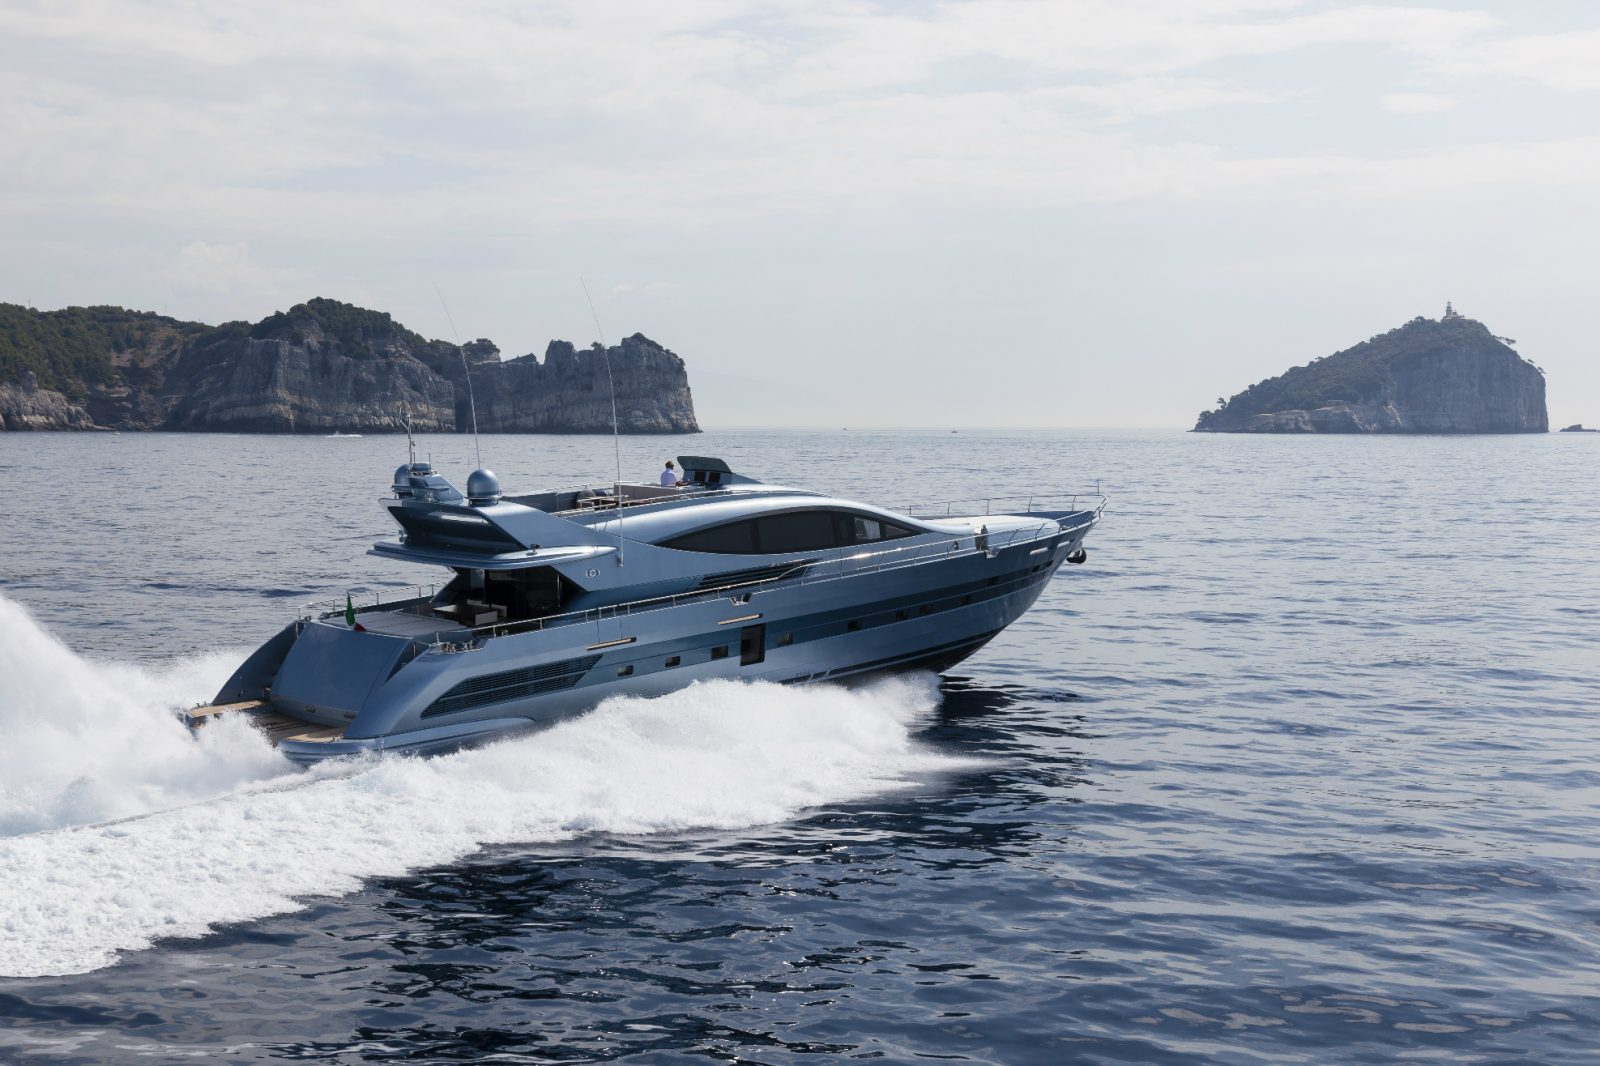 Luxury yacht for Sale | Cerri 102 by CCN - Cerri Cantieri Navali